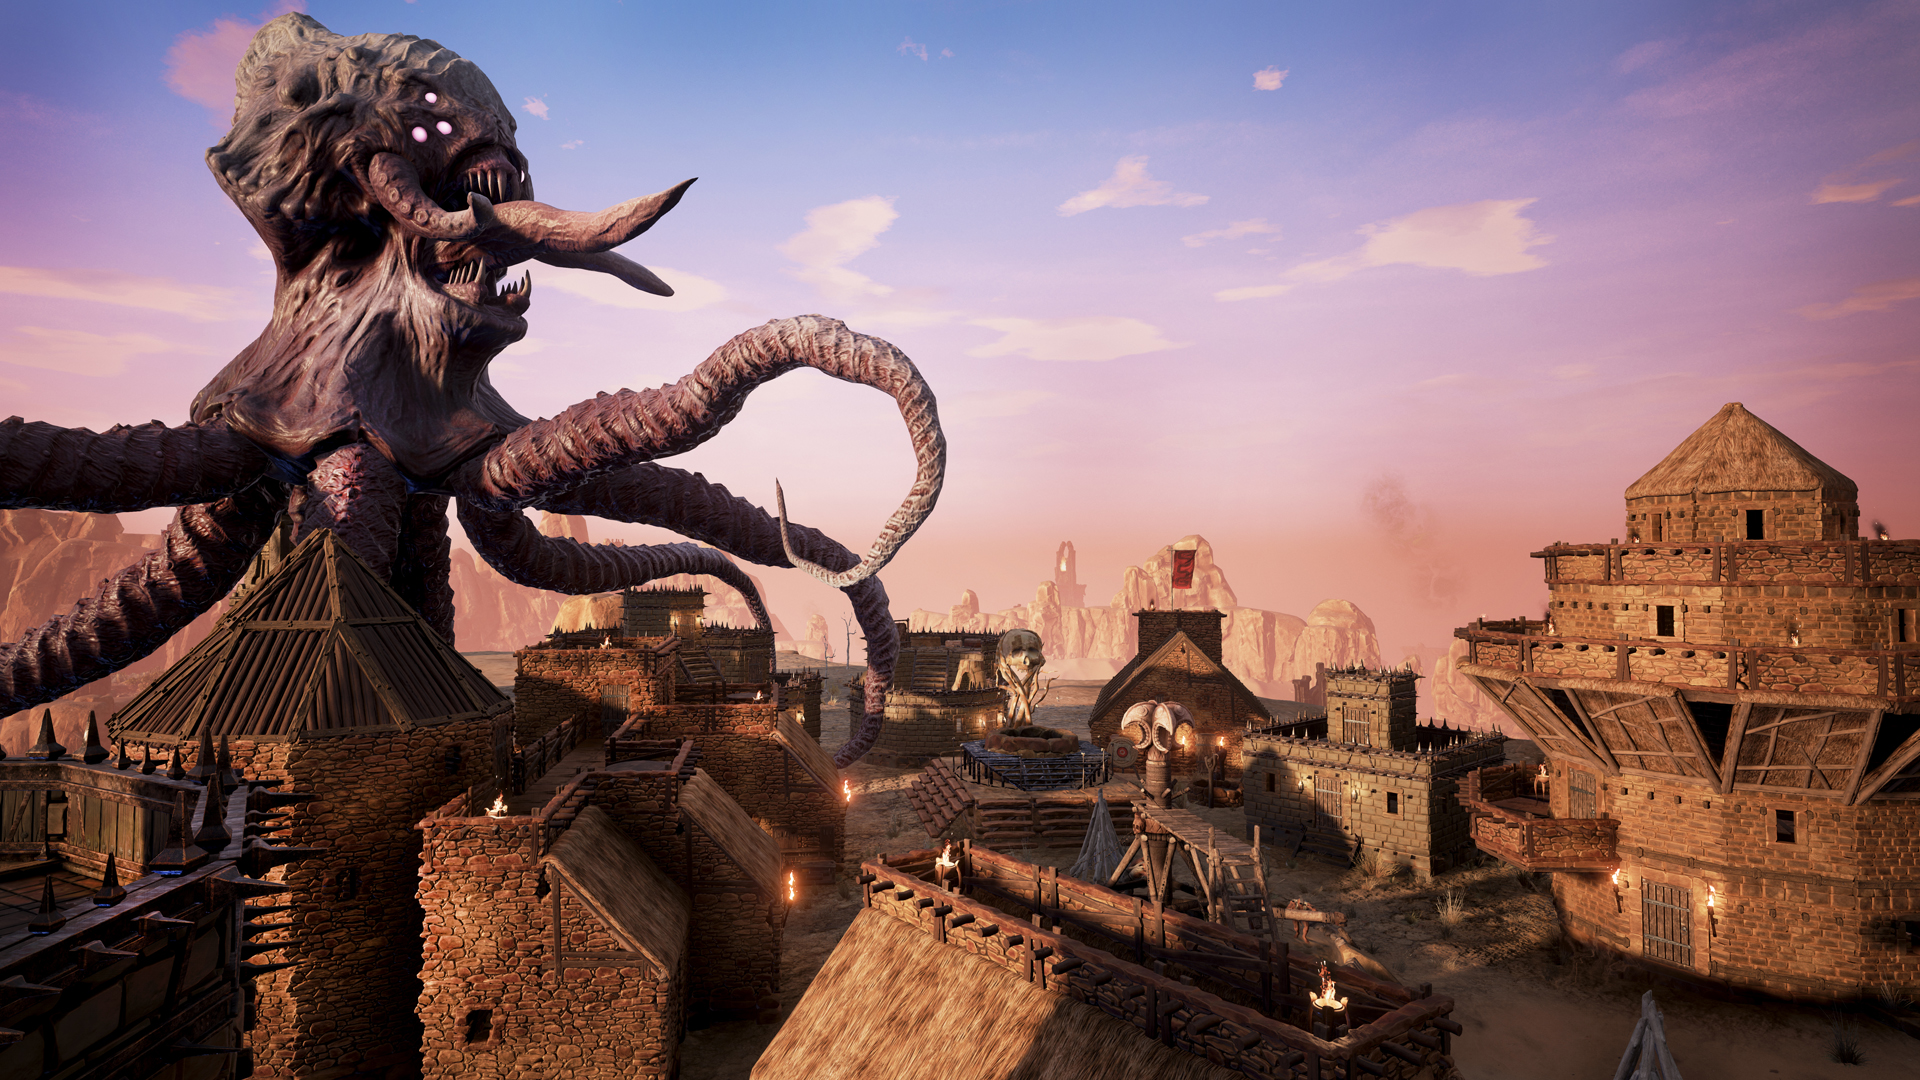 conan-exiles-god-avatar-attack.jpg